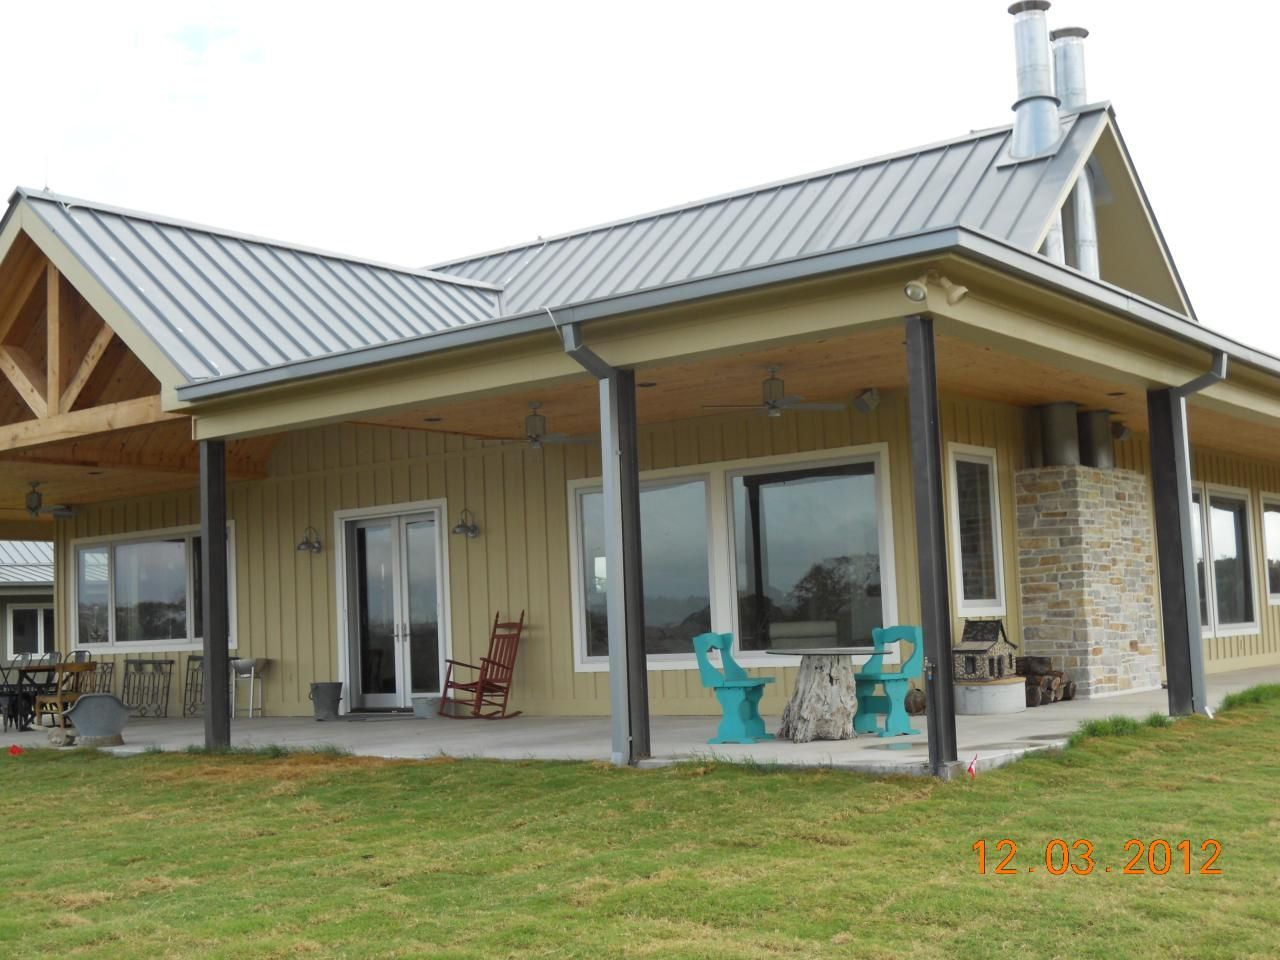 Barndominium on pinterest metal buildings metal for Steel house plans